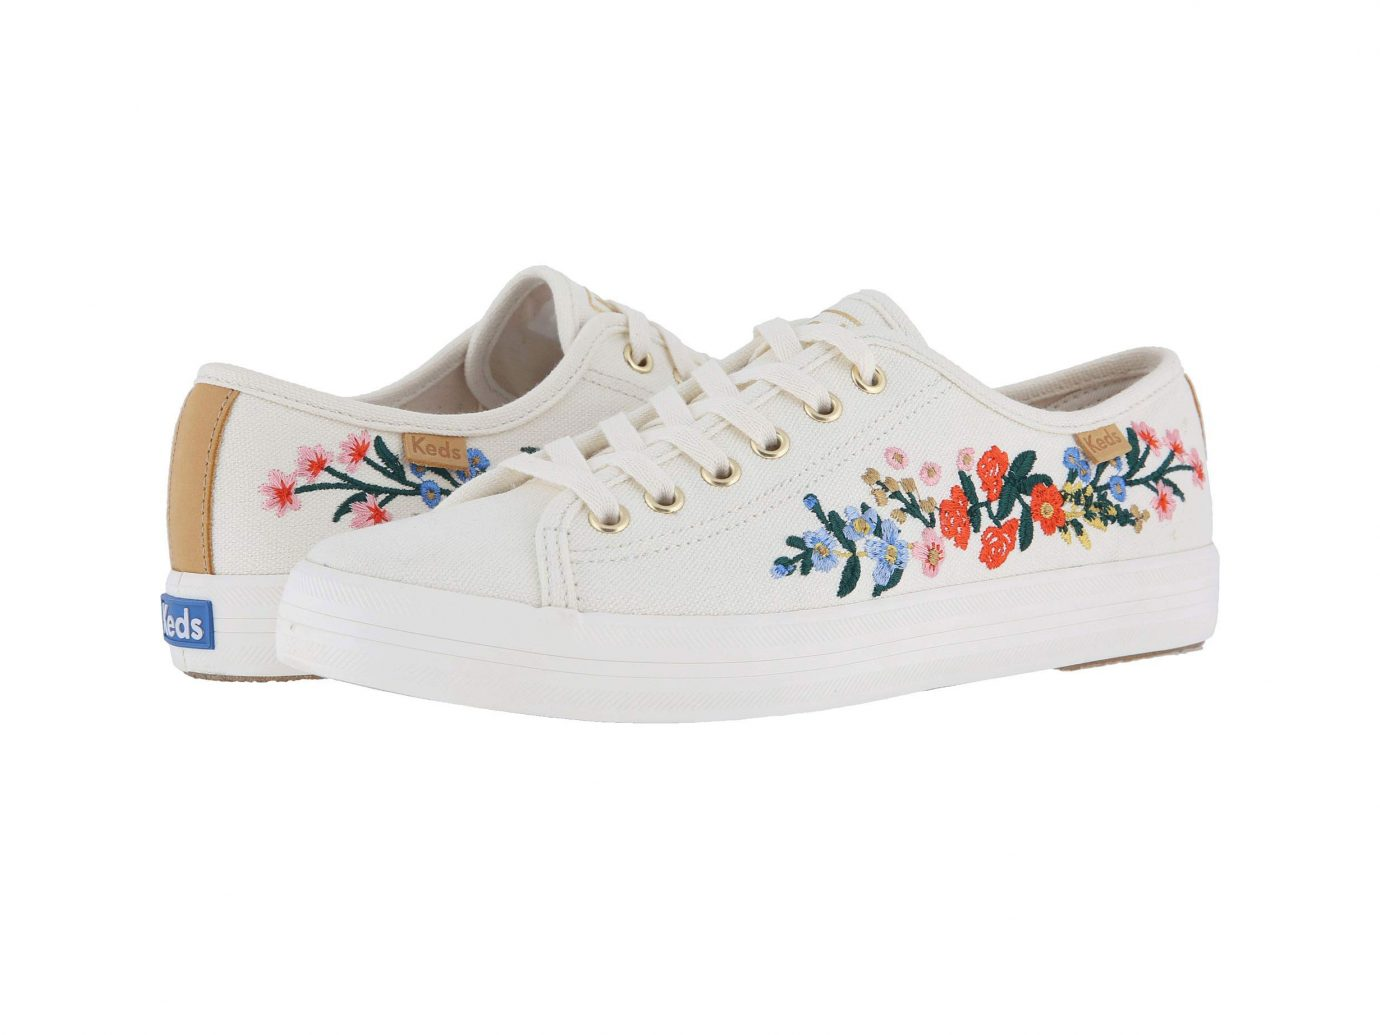 Keds x Rifle Paper Co. Kickstart Vines Embroidery Sneaker